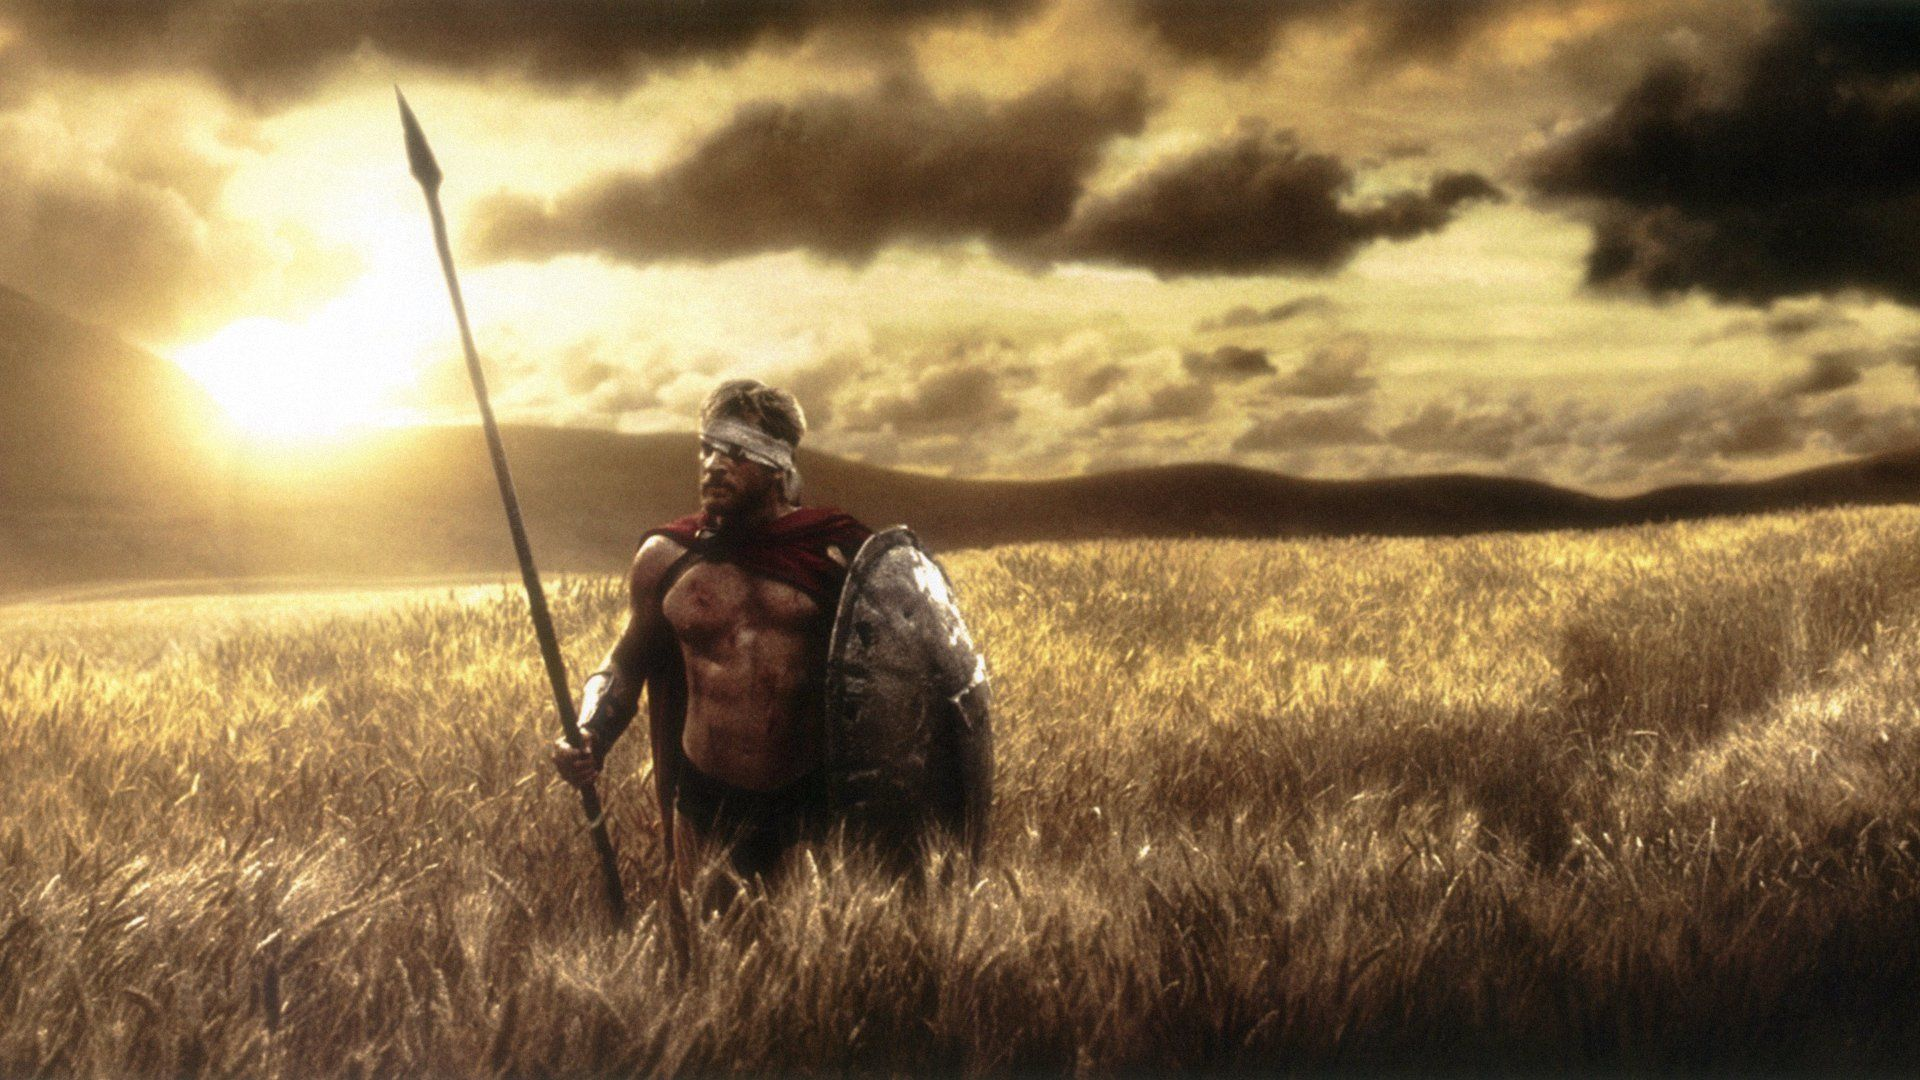 Movie 300 Wallpaper Hd Backgrounds Movie Wallpapers 300 Movie